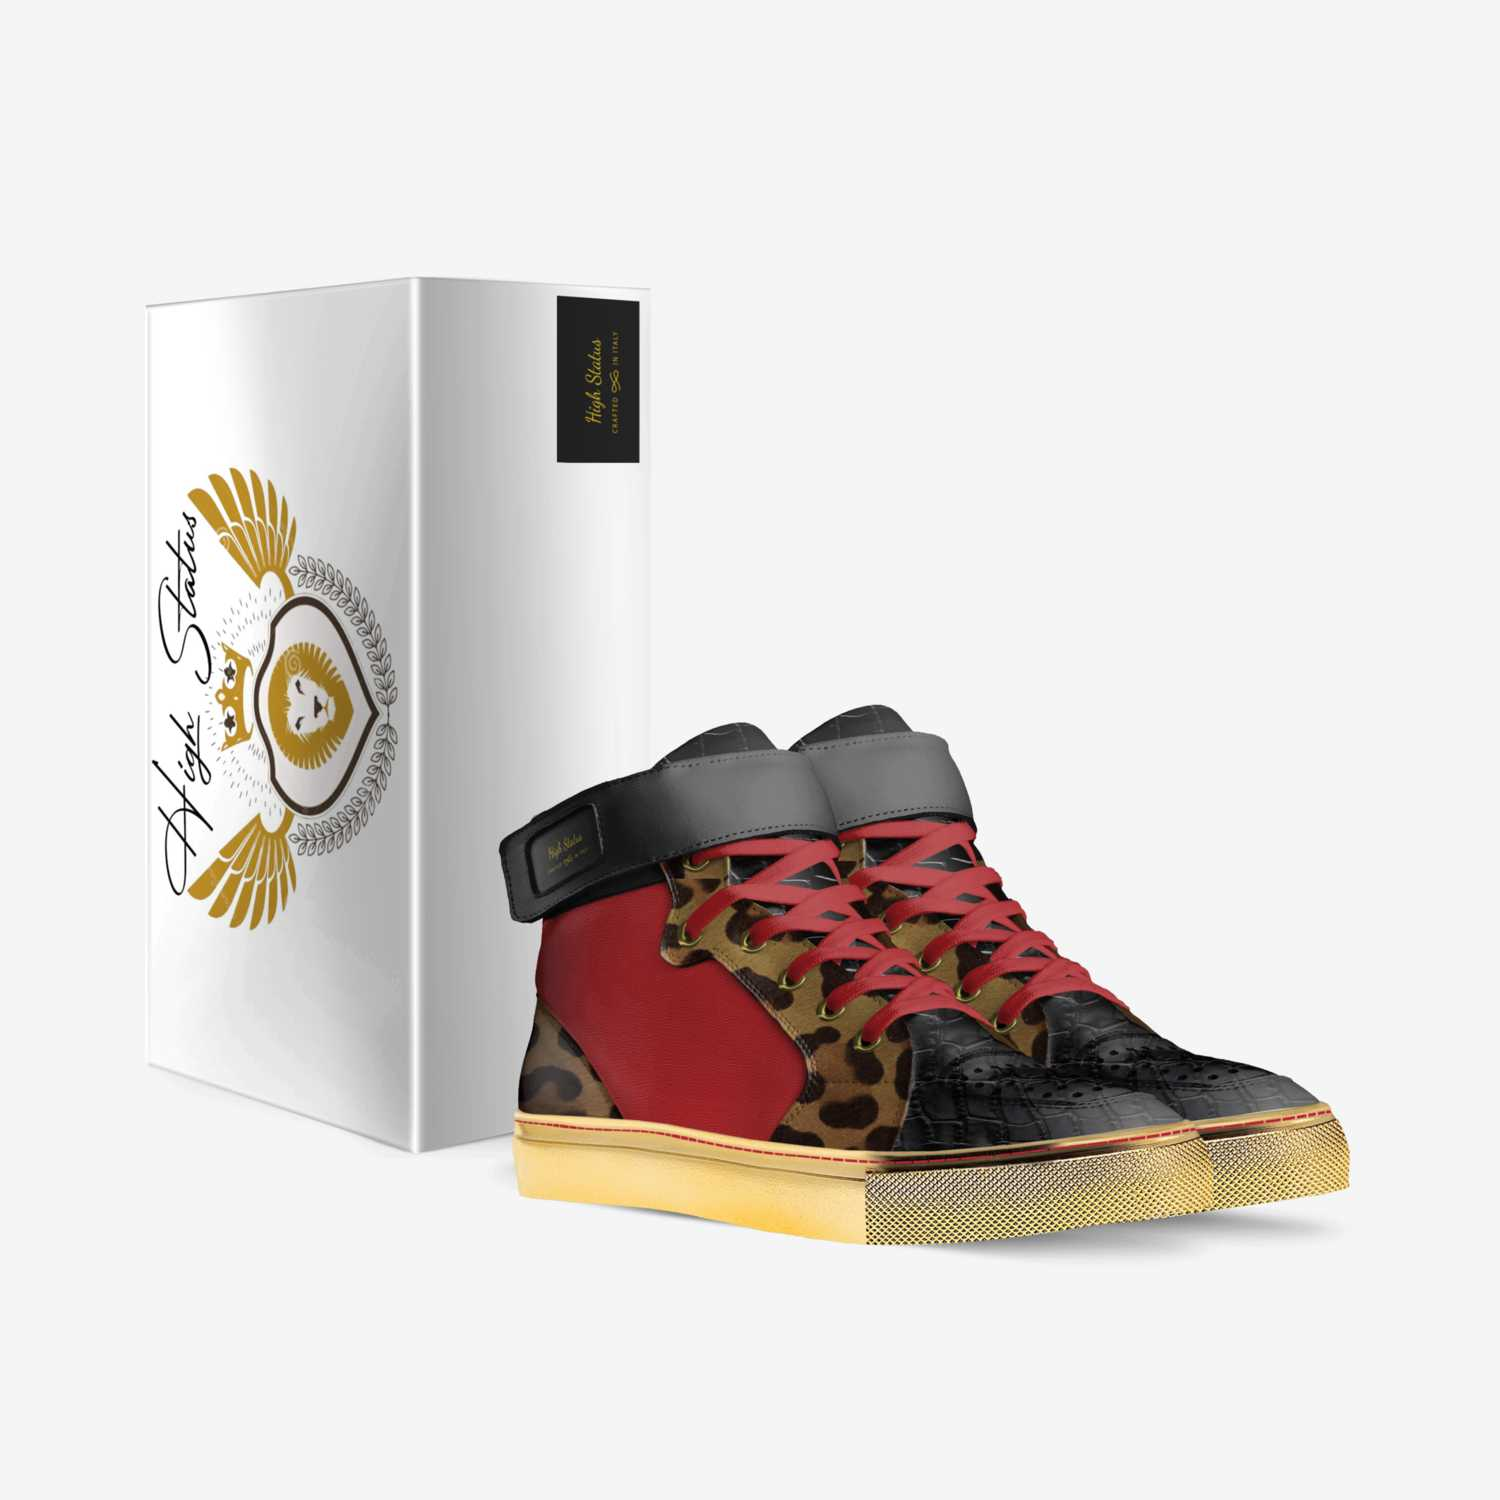 High Status custom made in Italy shoes by Ernest Ruffin   Box view